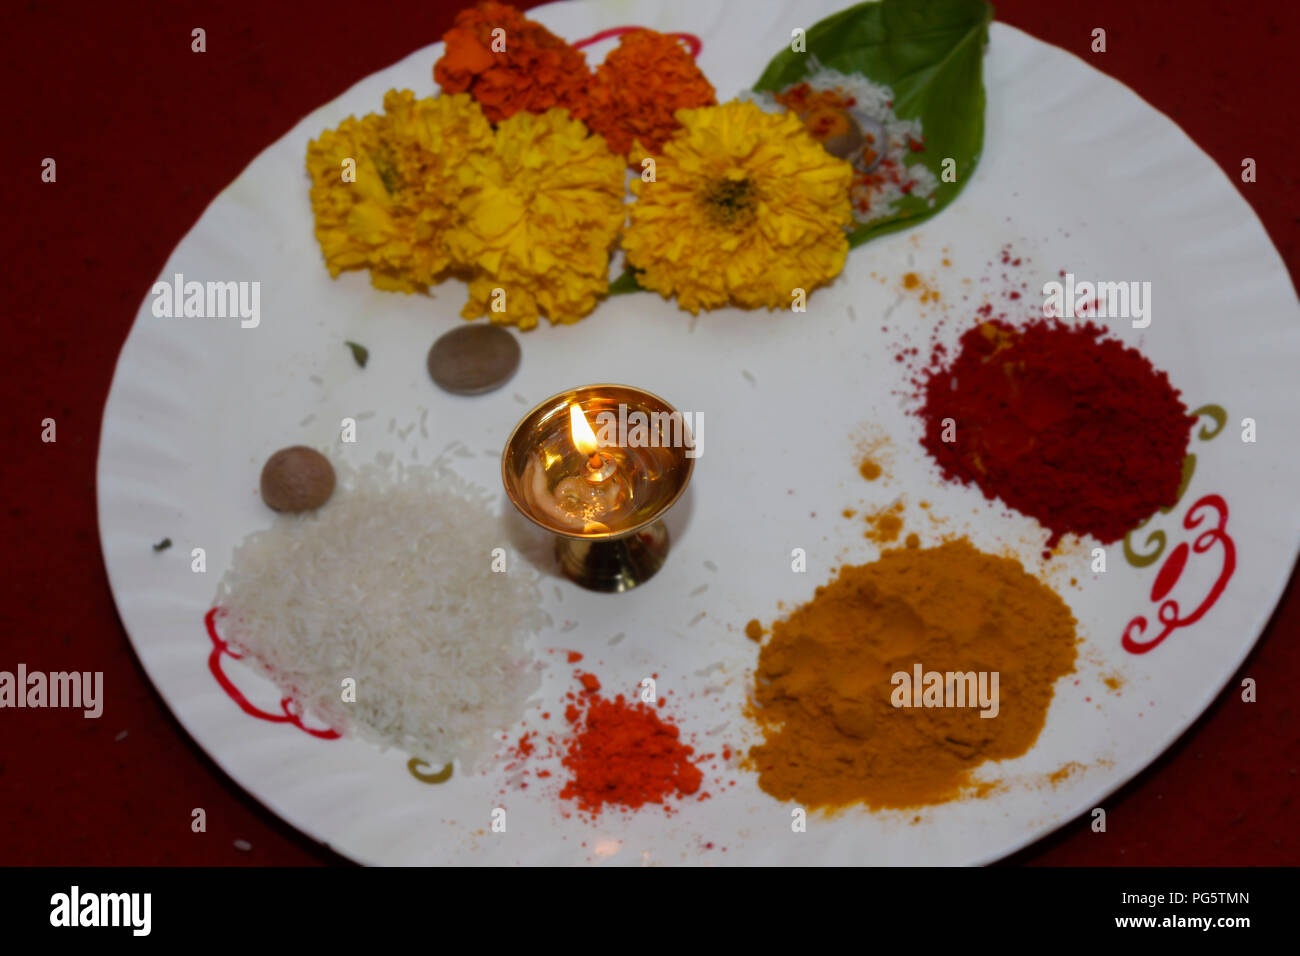 a plate ready for hindu god prayer with different essential things in a occasion of wedding - Stock Image